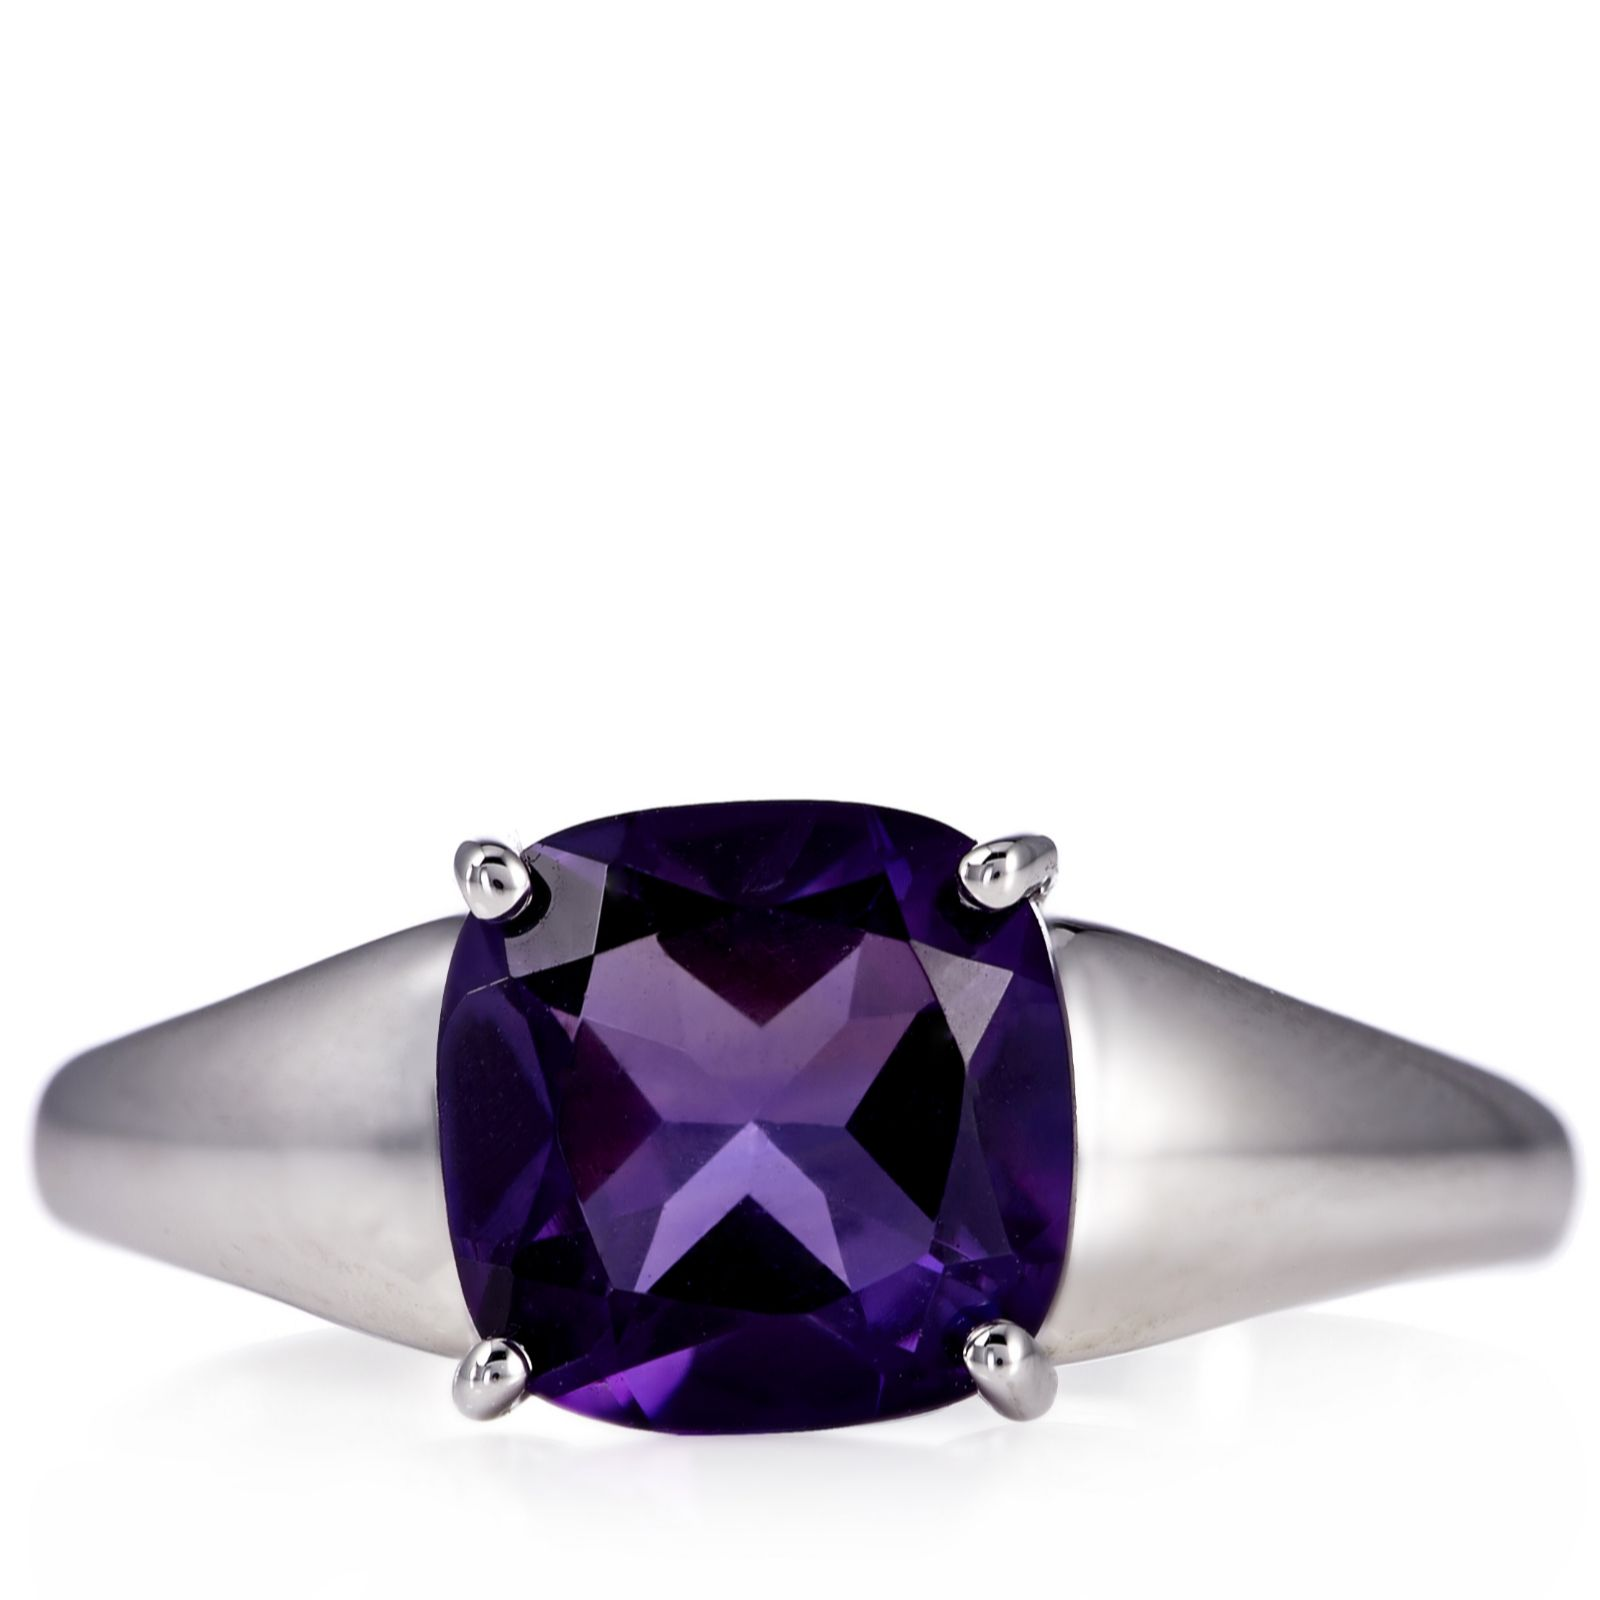 2.1ct Artigas Amethyst Cushion Cut Ring Sterling Silver